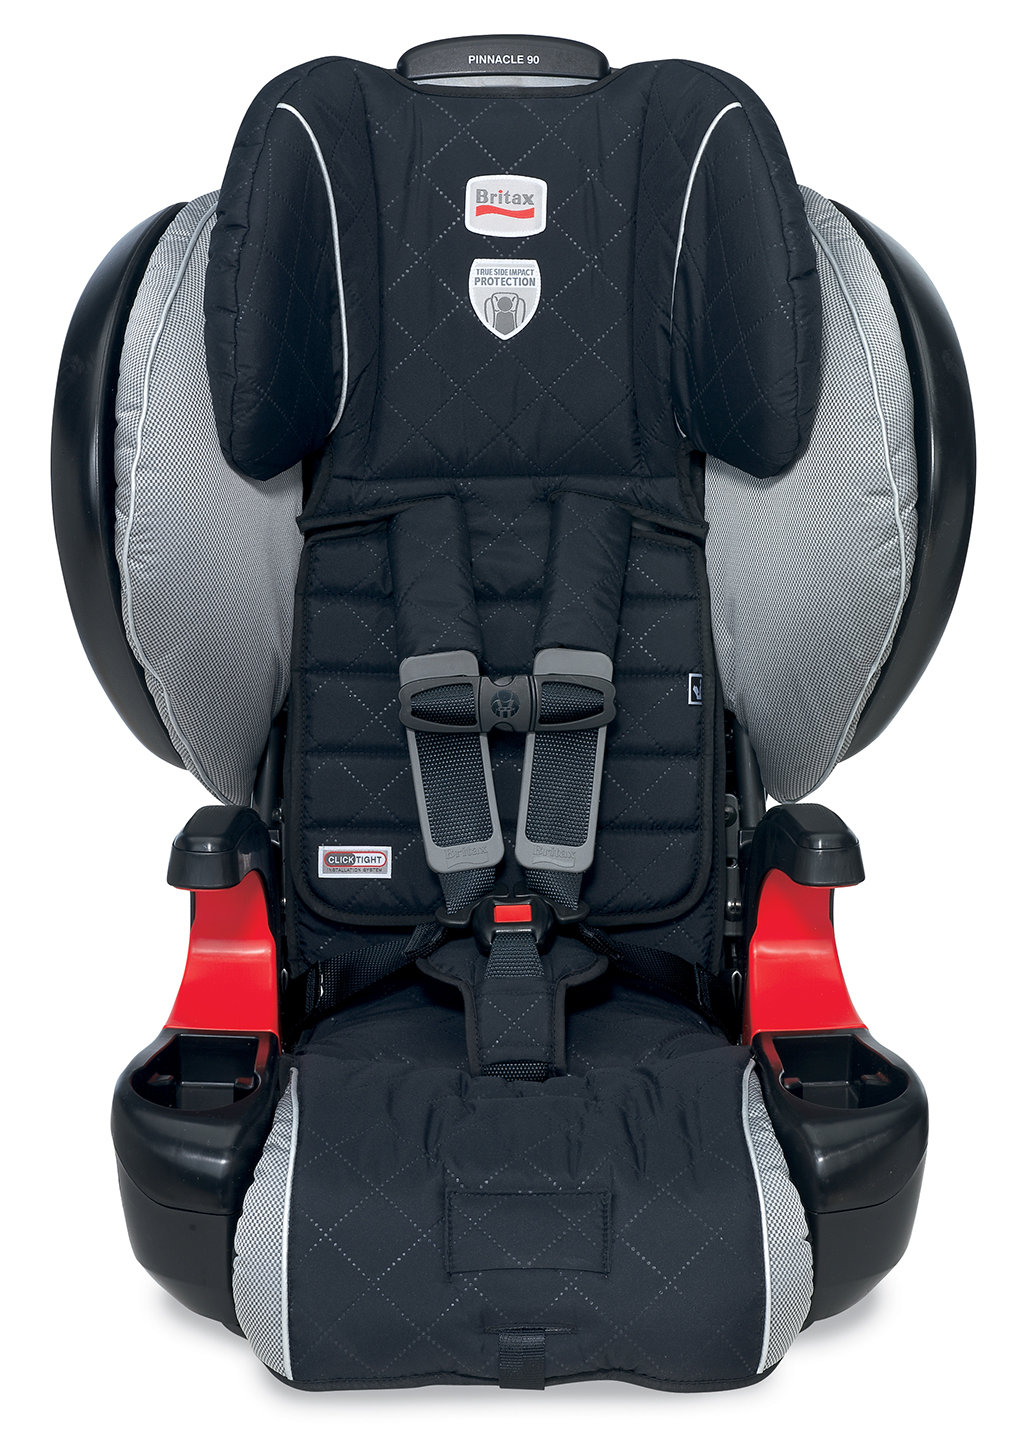 britax pinnacle 90 harness booster car seat manhattan frontier 90 with sict ebay. Black Bedroom Furniture Sets. Home Design Ideas